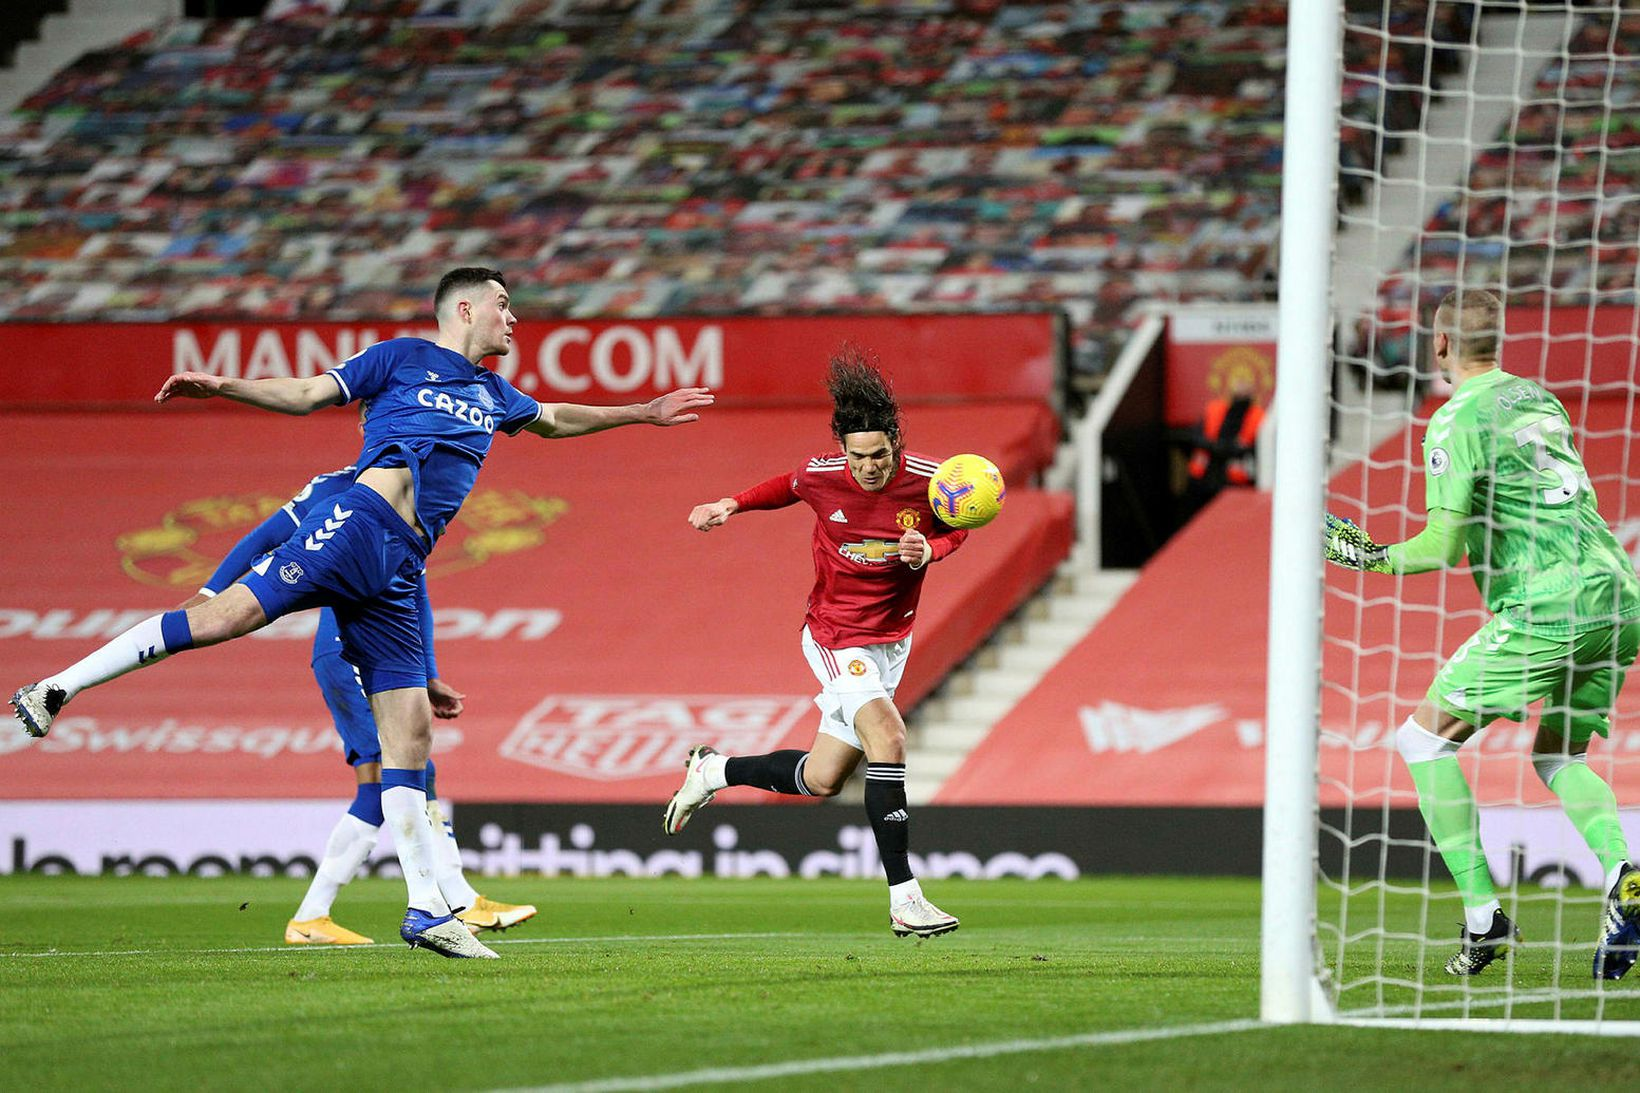 calvert-lewin,Manchester United vs Everton Football Club Ends in a 3-3 Draw